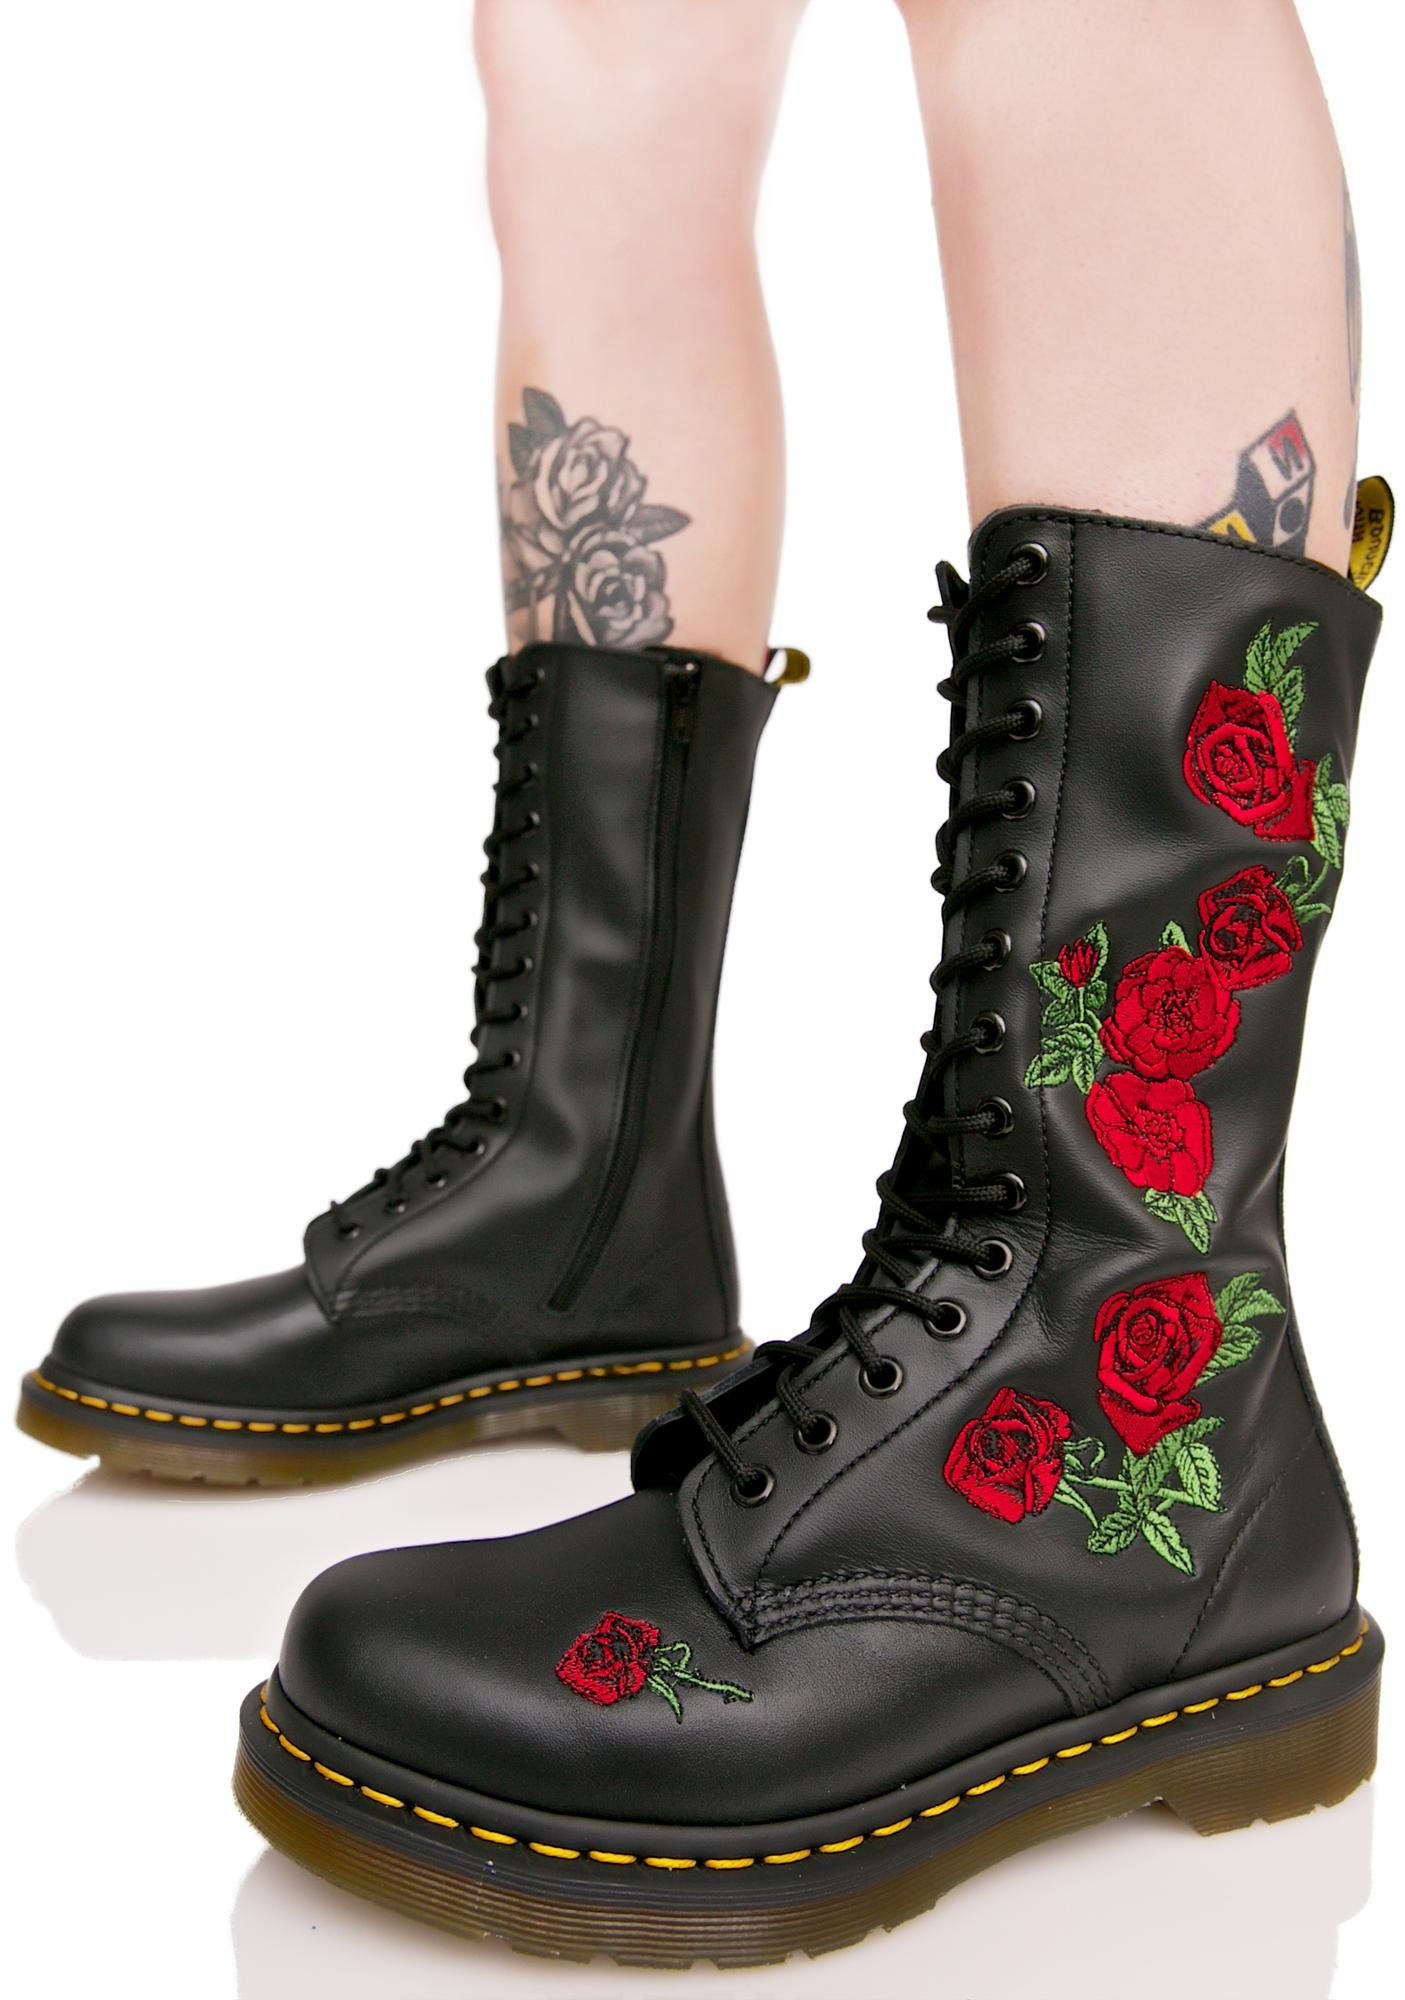 Dr. Martens Vonda Embroidered 14 Eye Boots are tough as thornz, bb~ These